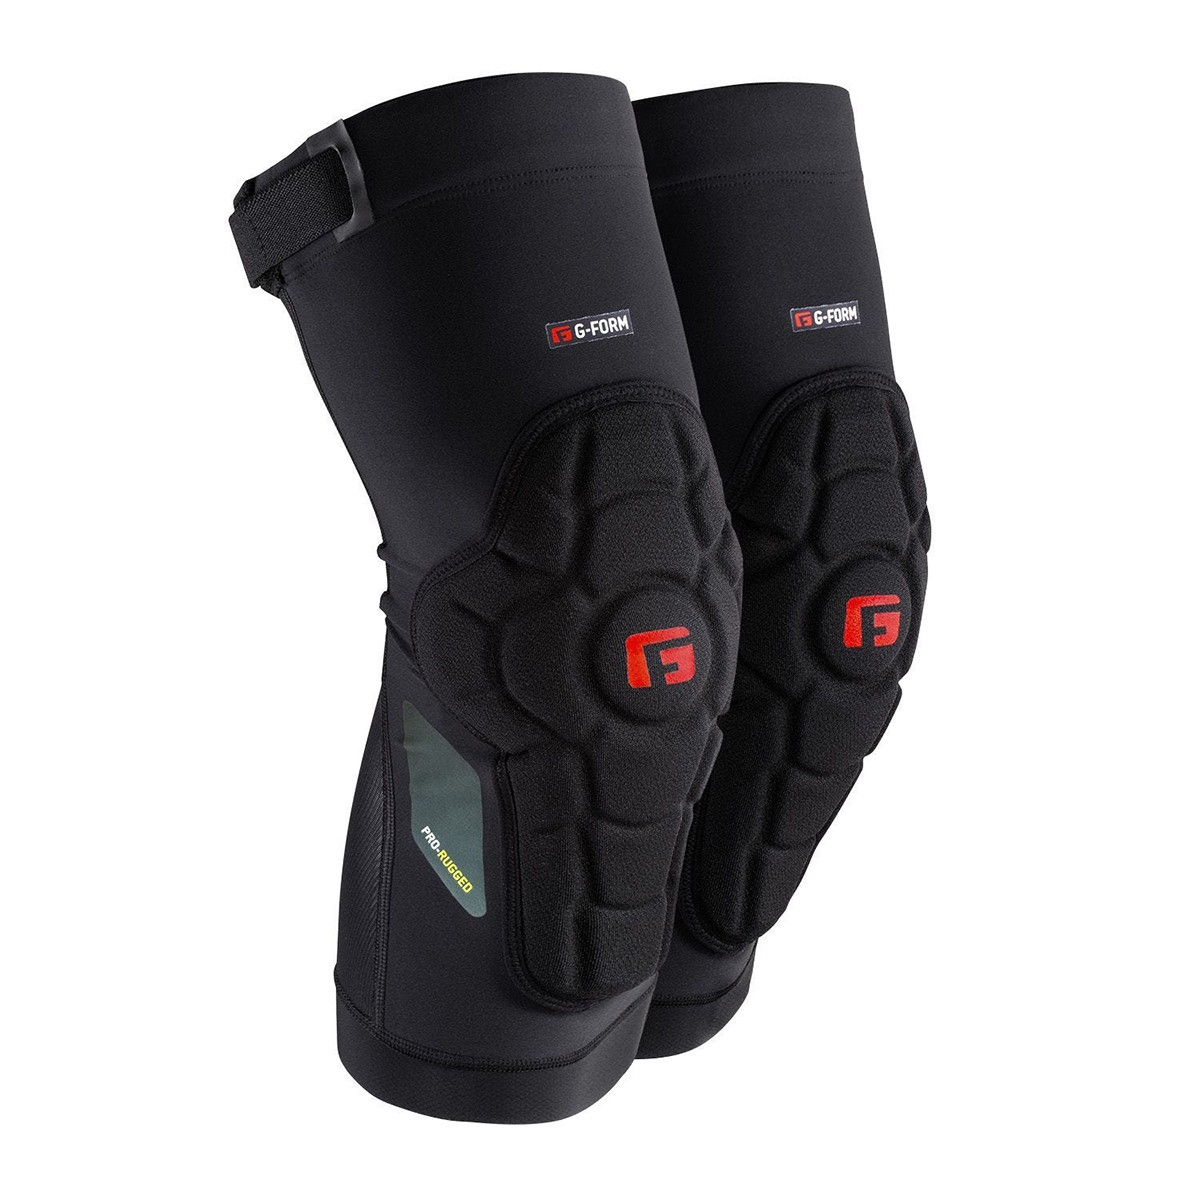 G-FORM PRO-RUGGED KNEE GUARDS